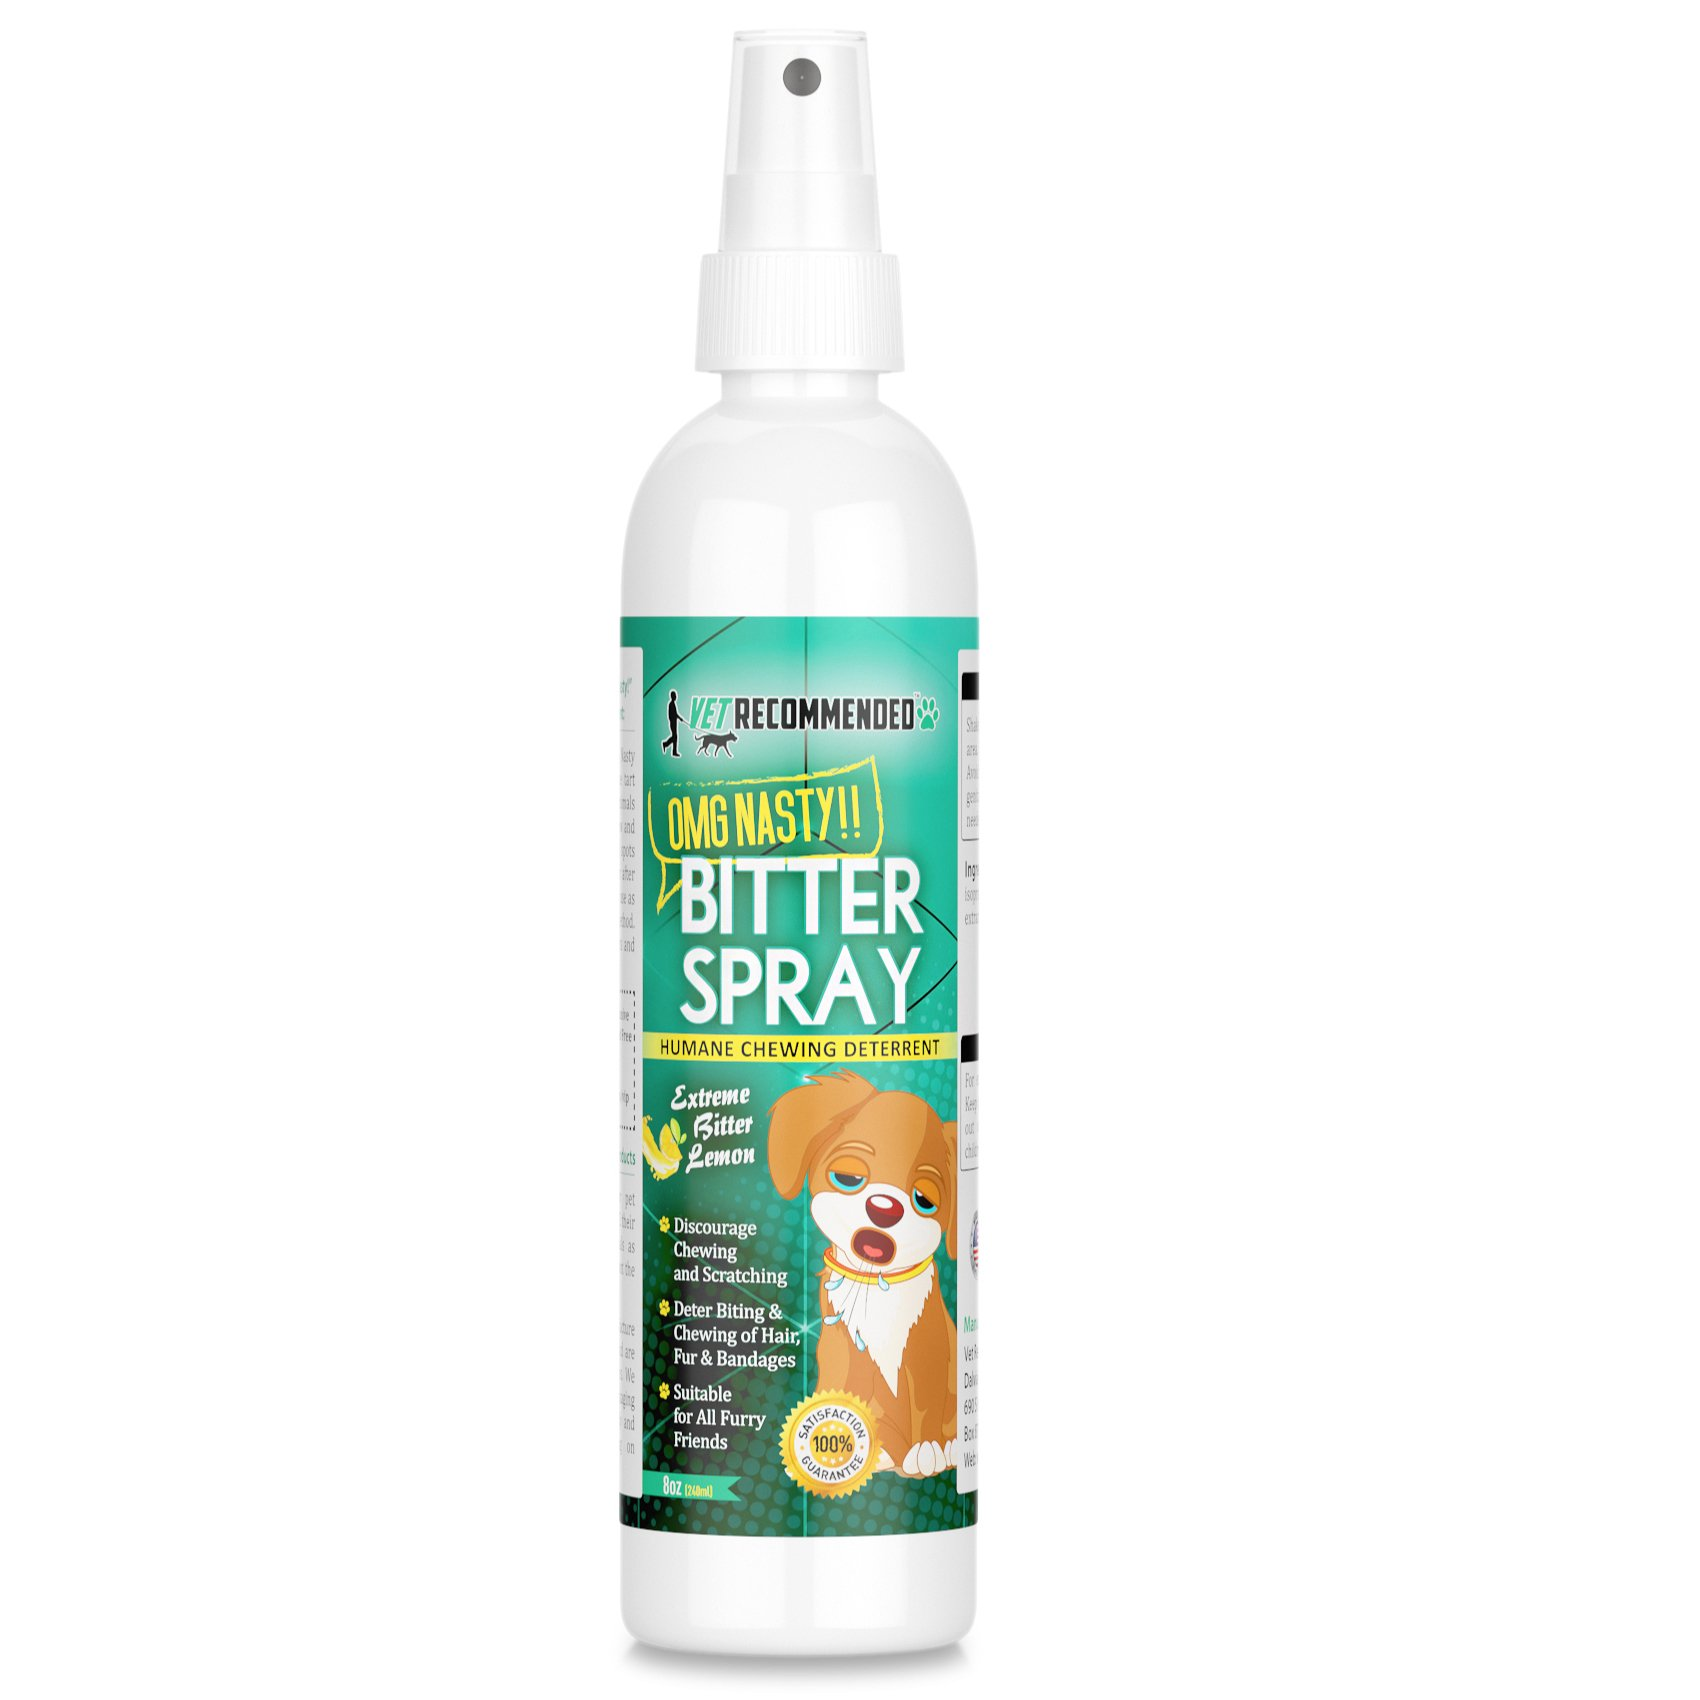 Vet Recommended - Bitter Lemon Spray for Dogs - OMG Nasty - Anti Chew Dog Repellent Spray & Dog Training Tool to Stop Biting - Alcohol Free, Non-Toxic and Safe Chewing Deterrent. (8oz/240ml) by Vet Recommended